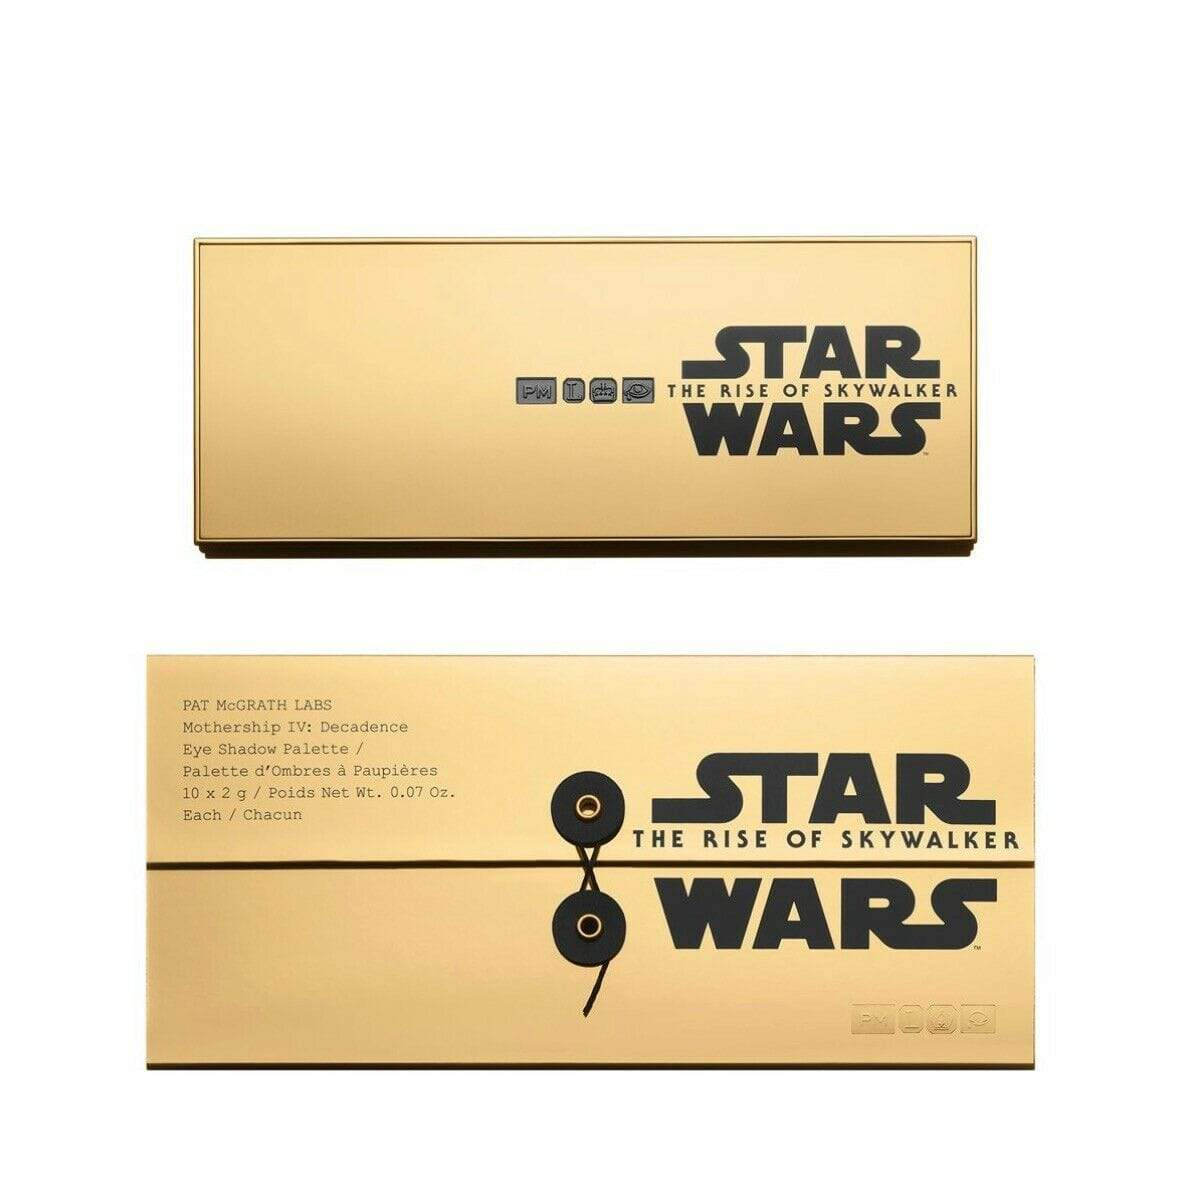 PAT MCGRATH LABS eyeshadow palette PAT MCGRATH LABS Star Wars The Rise Of Skywalker Mothership IV Decadence Eyeshadow Palette